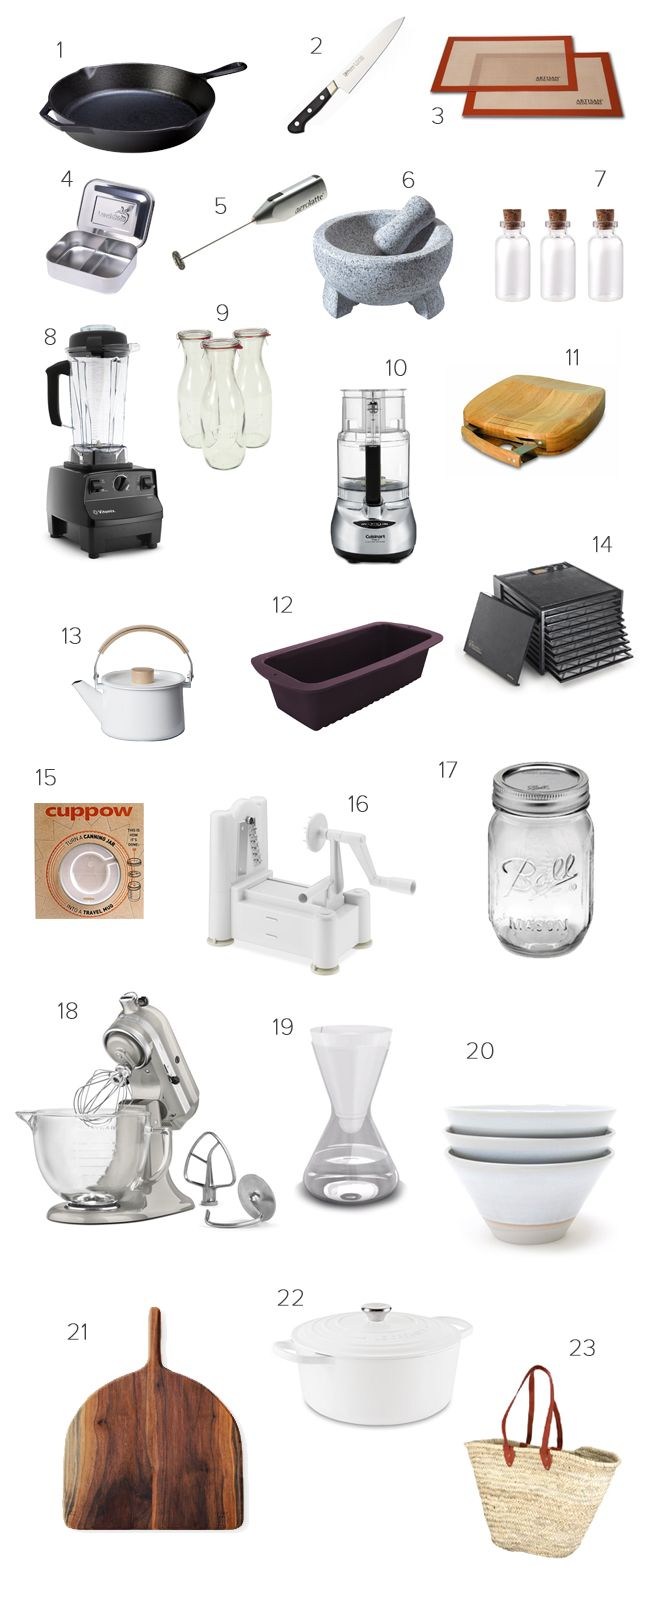 McKel's Favorite Kitchen Tools - Nutrition Stripped | http://www.nutritionstripped.com/kitchen-tools/